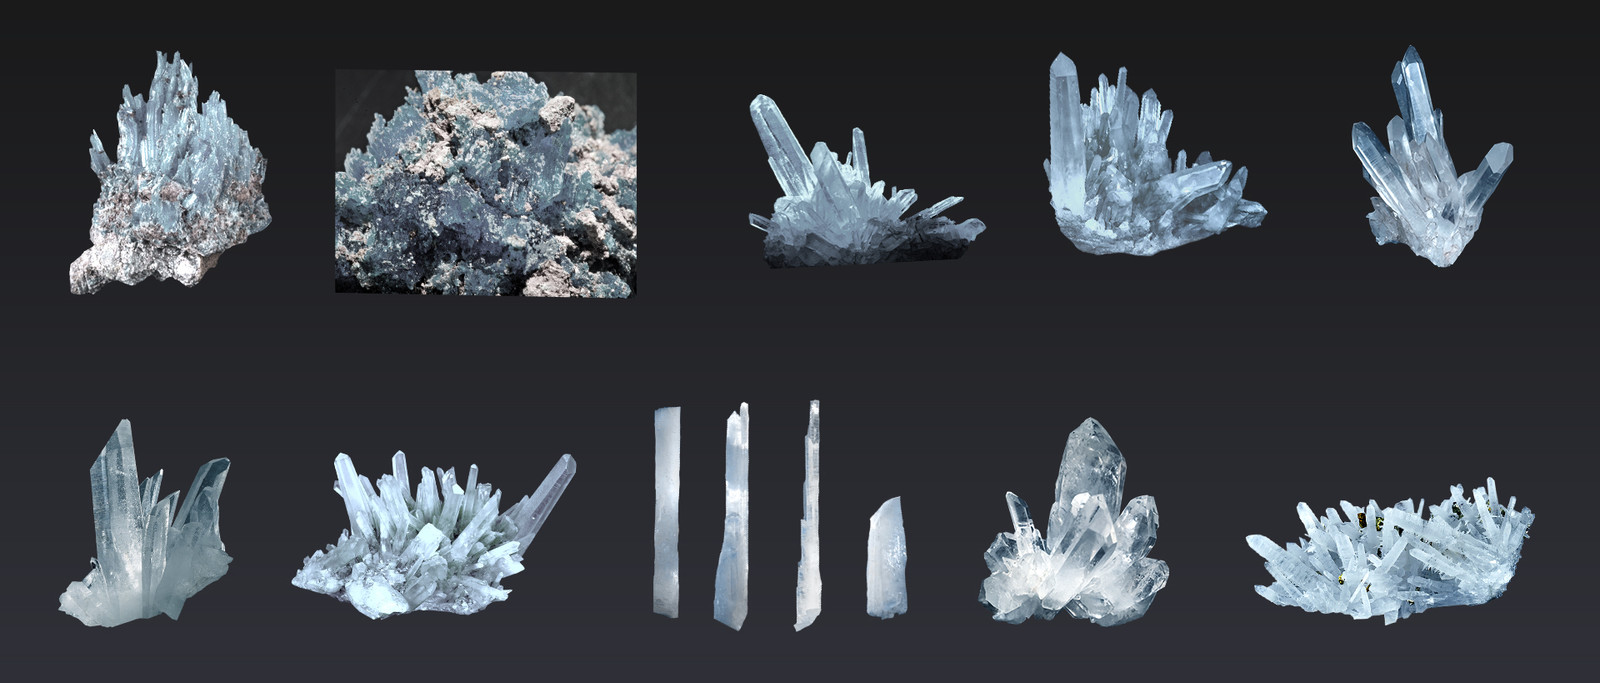 crystal assets I used to create the infection on each artwork. only 13 pieces but I placed them in different sizes and rotation to achieve almost endless variations.